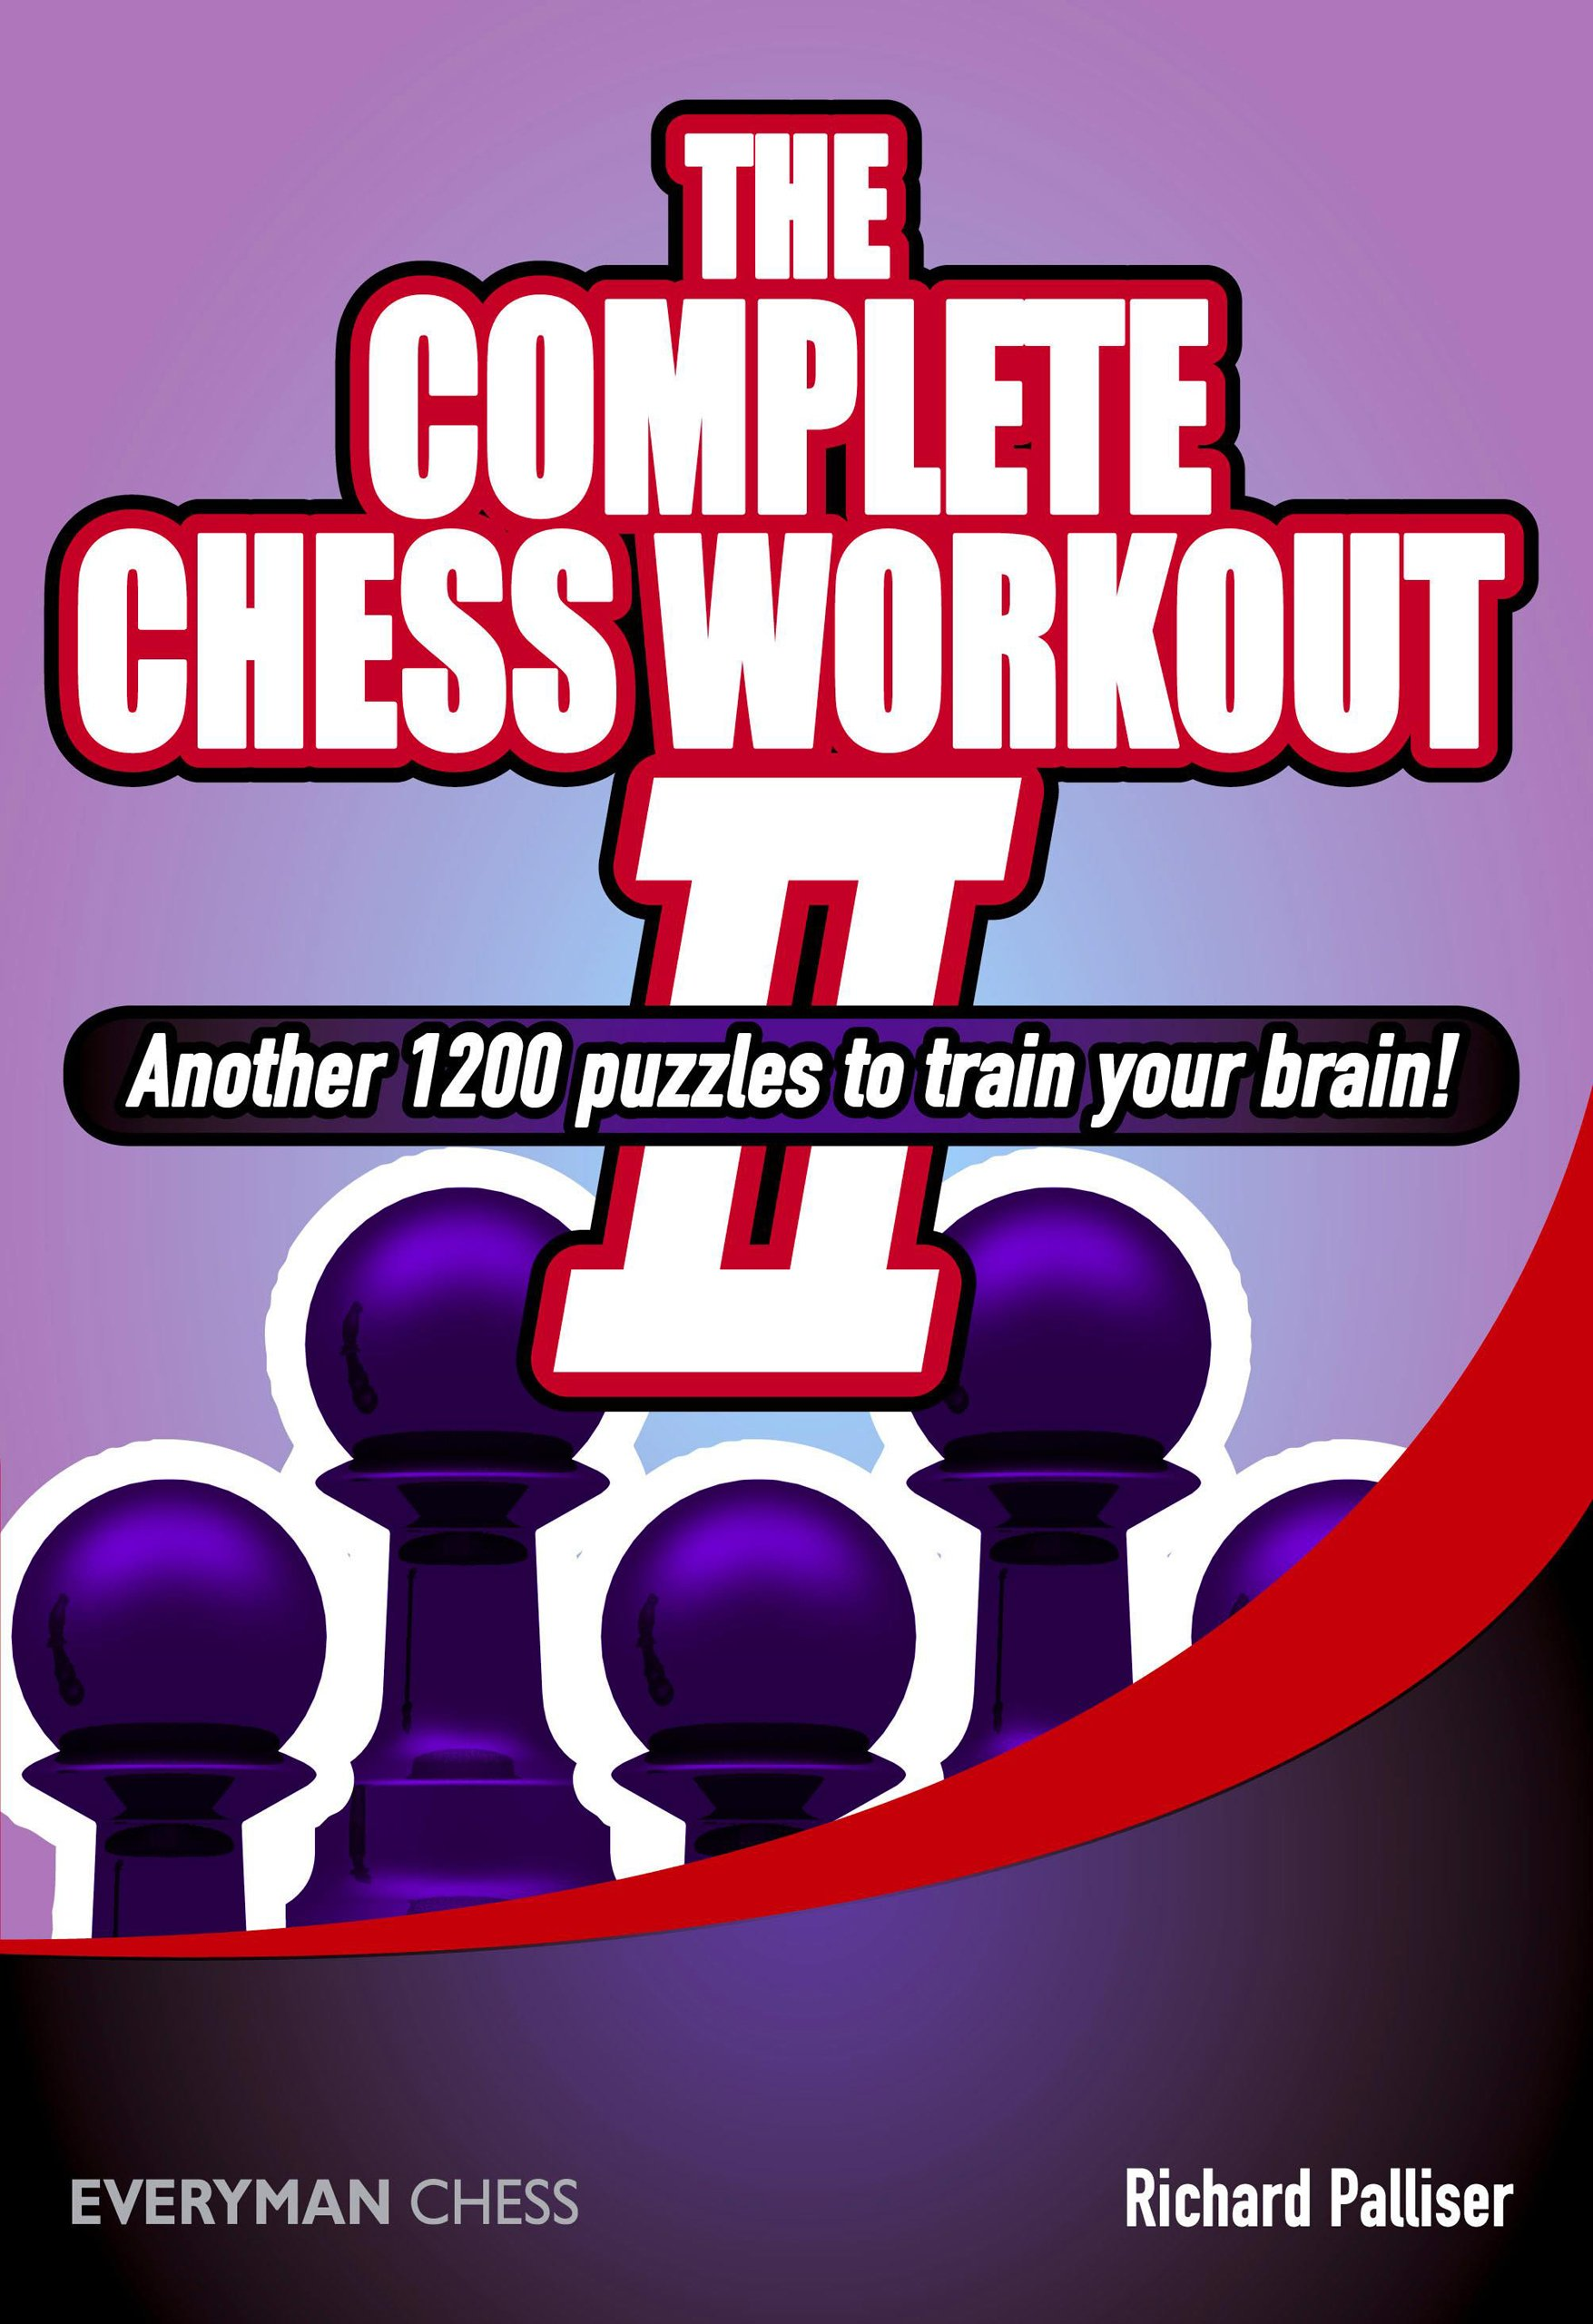 The Complete Chess Workout II, Everyman, 2012